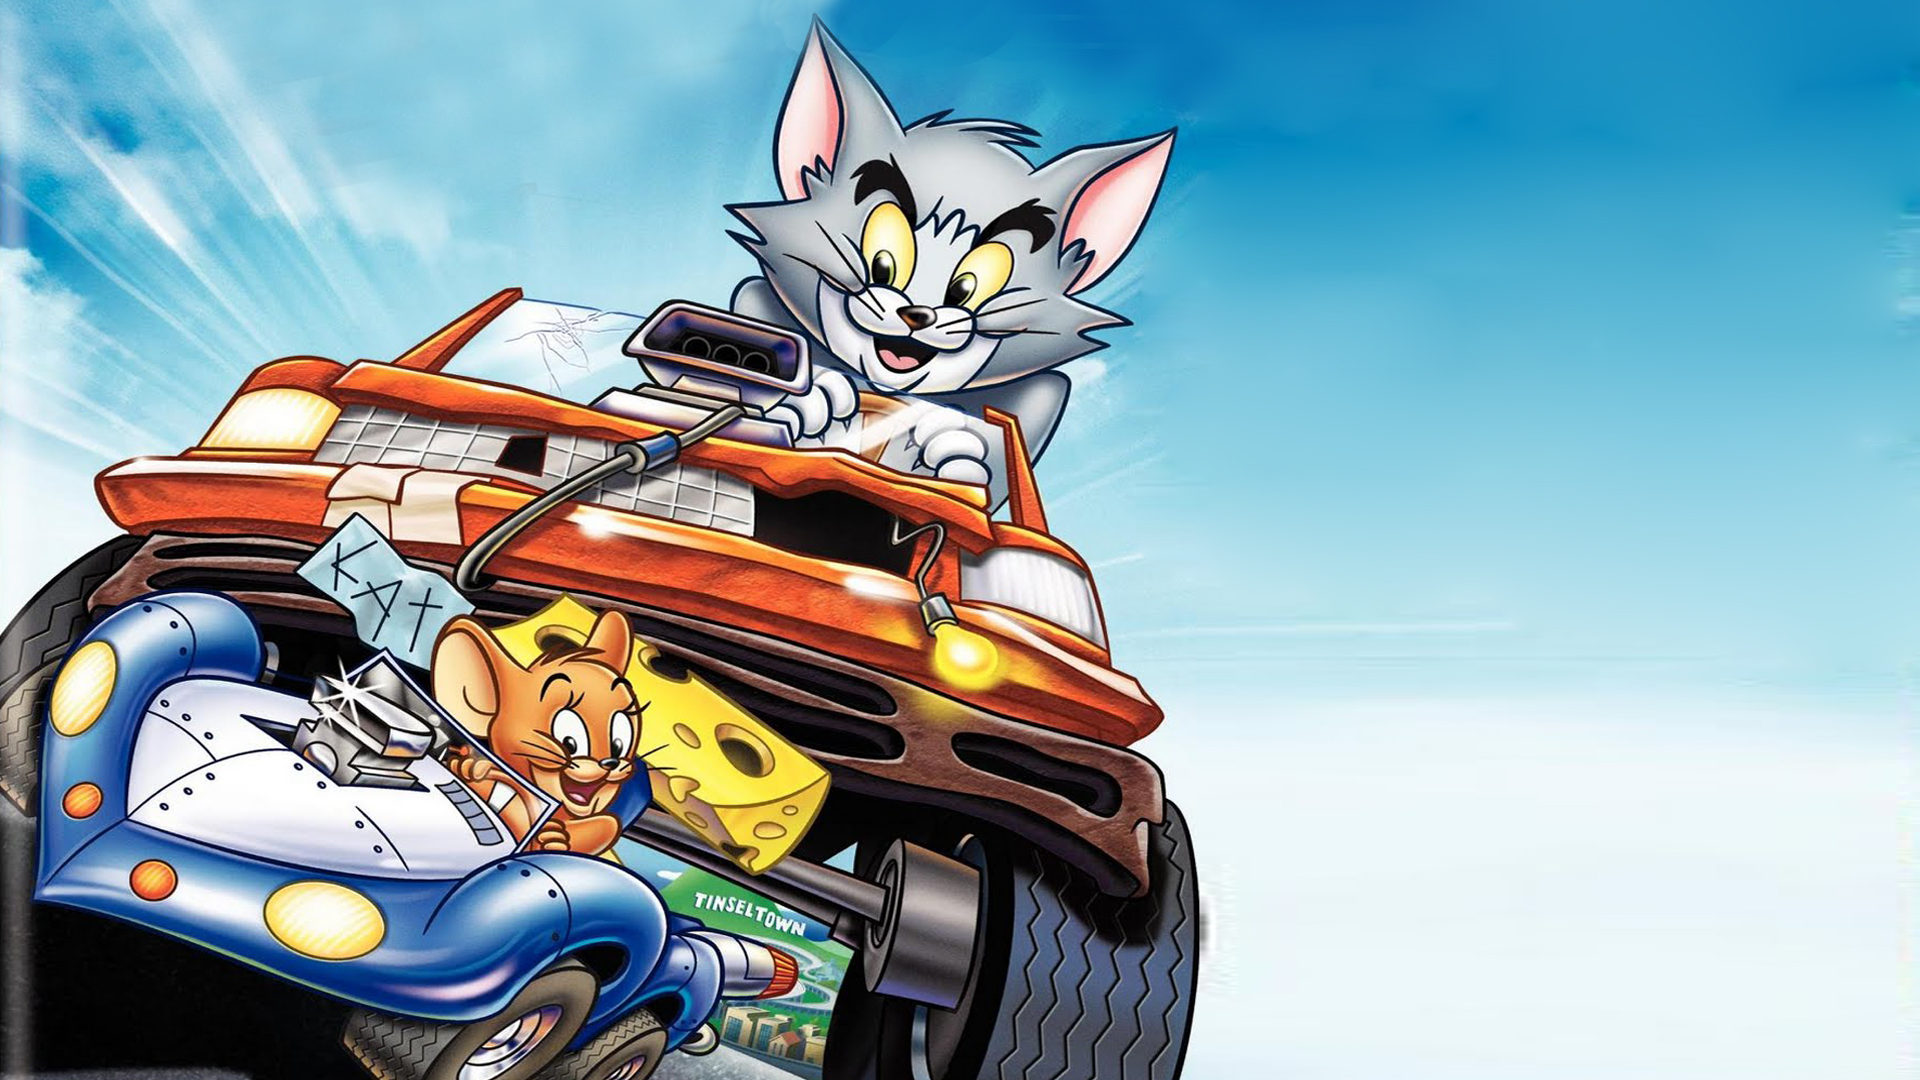 Full Hd 1080p Wallpapers Cars Tom And Jerry The Fast And The Furry Animated Action